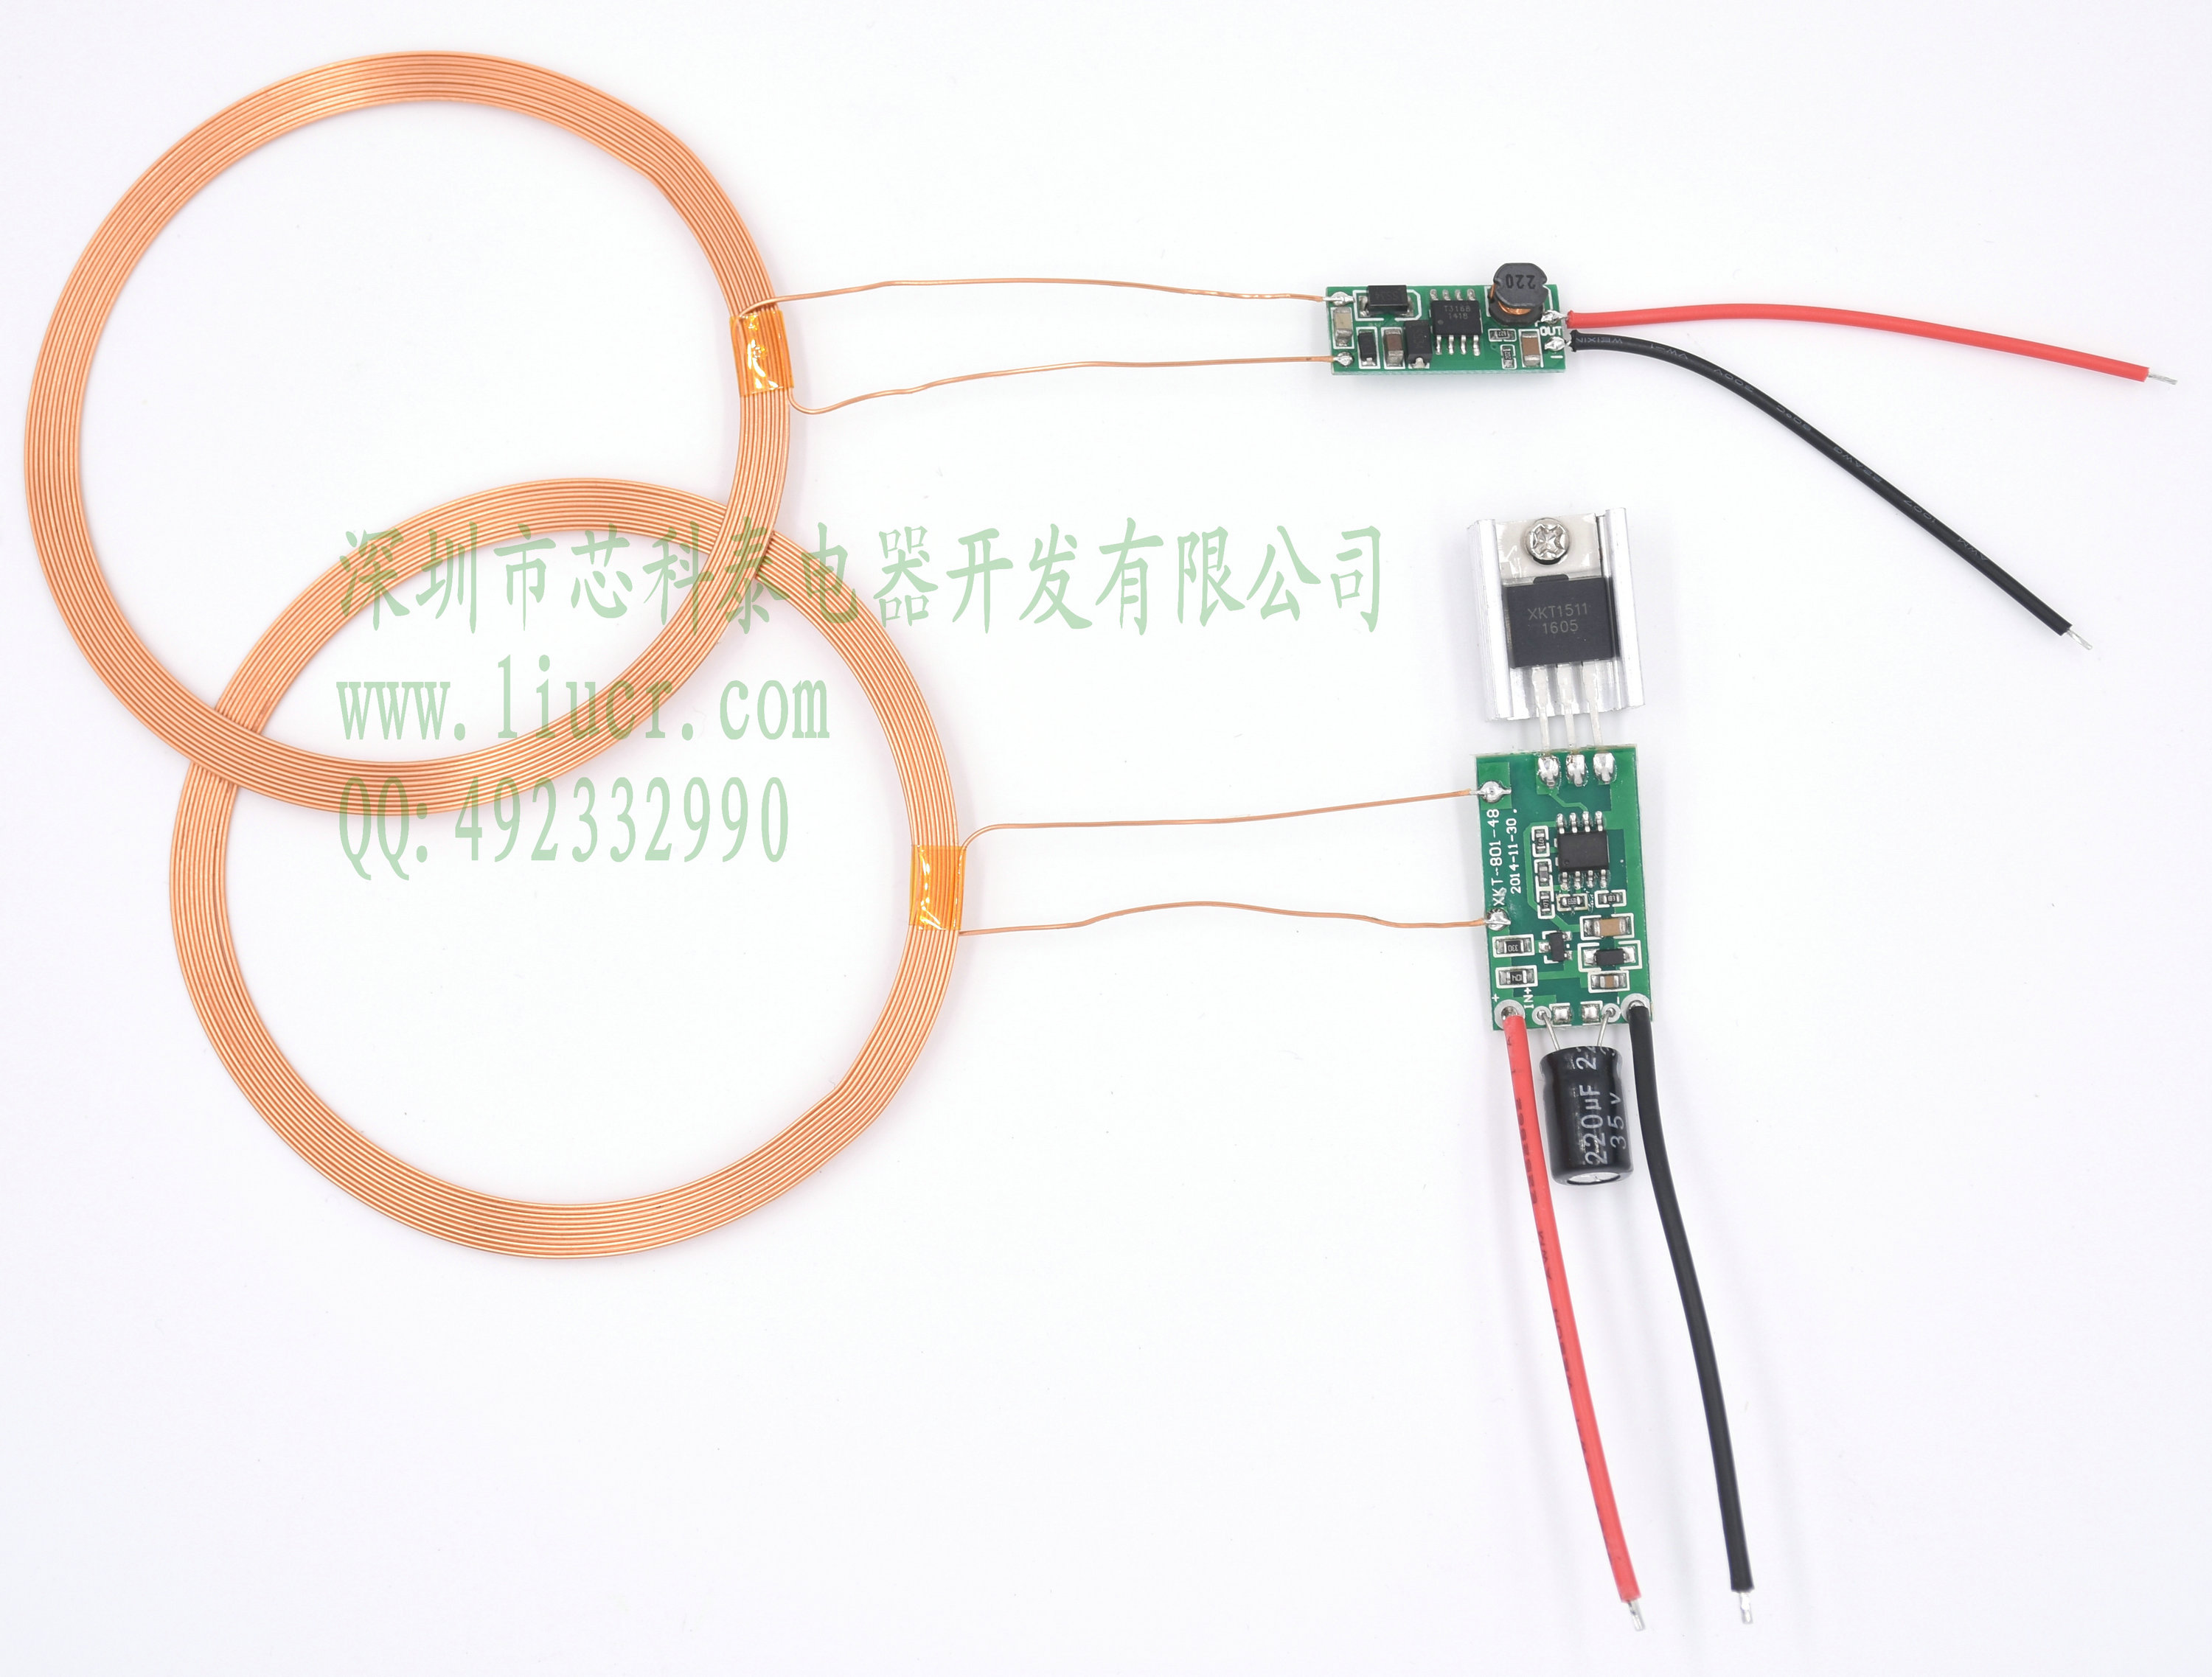 20mm distance output 5V1A long distance high current wireless power supply charging transmission module program wireless charging wireless power supply wireless transmission module high current module xkt412 02